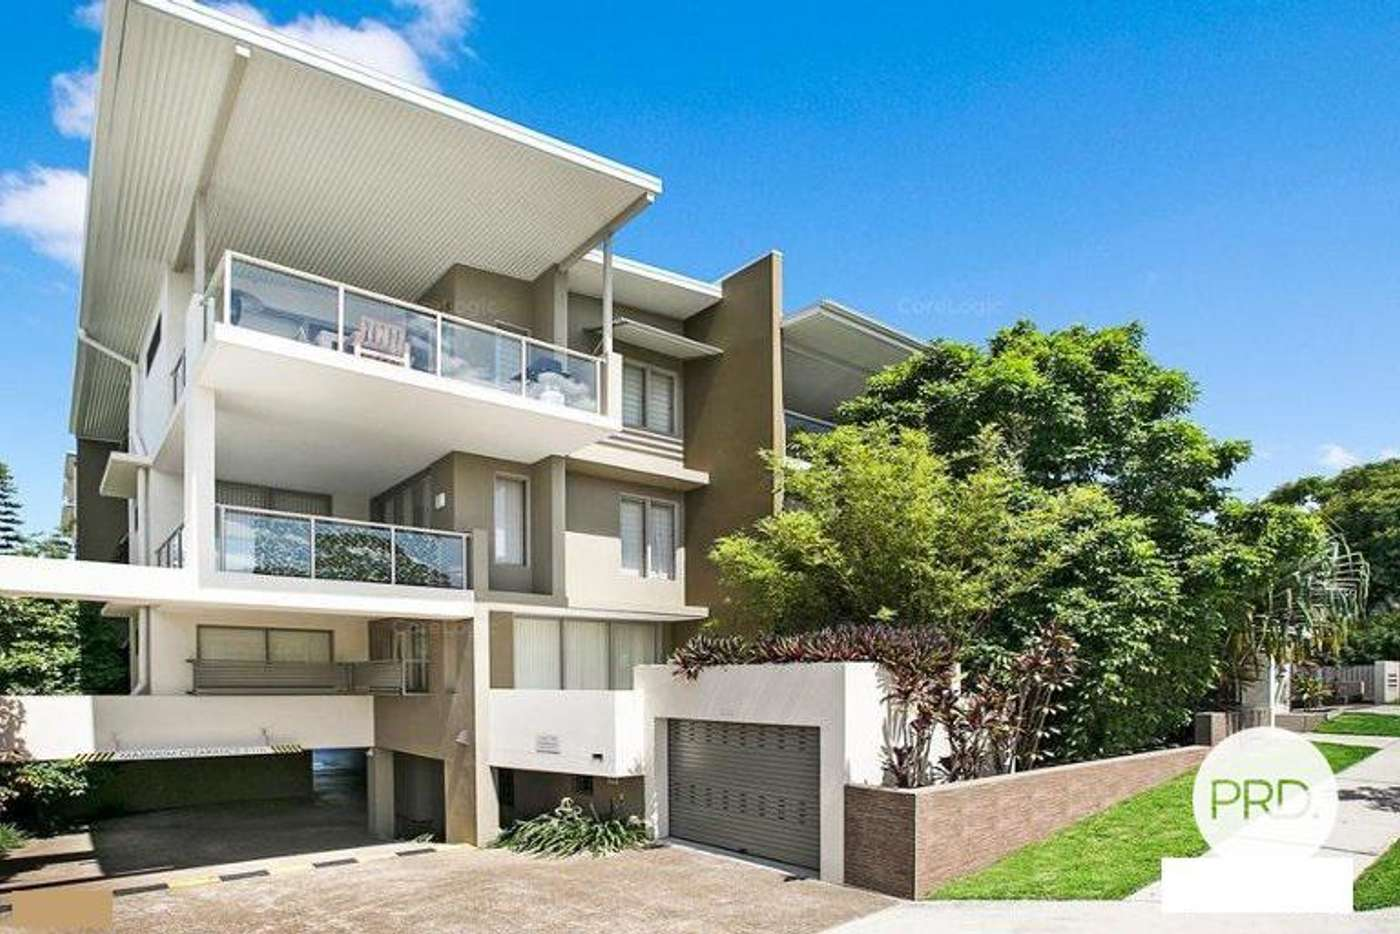 Main view of Homely apartment listing, 6/74 Durham Street, St Lucia QLD 4067